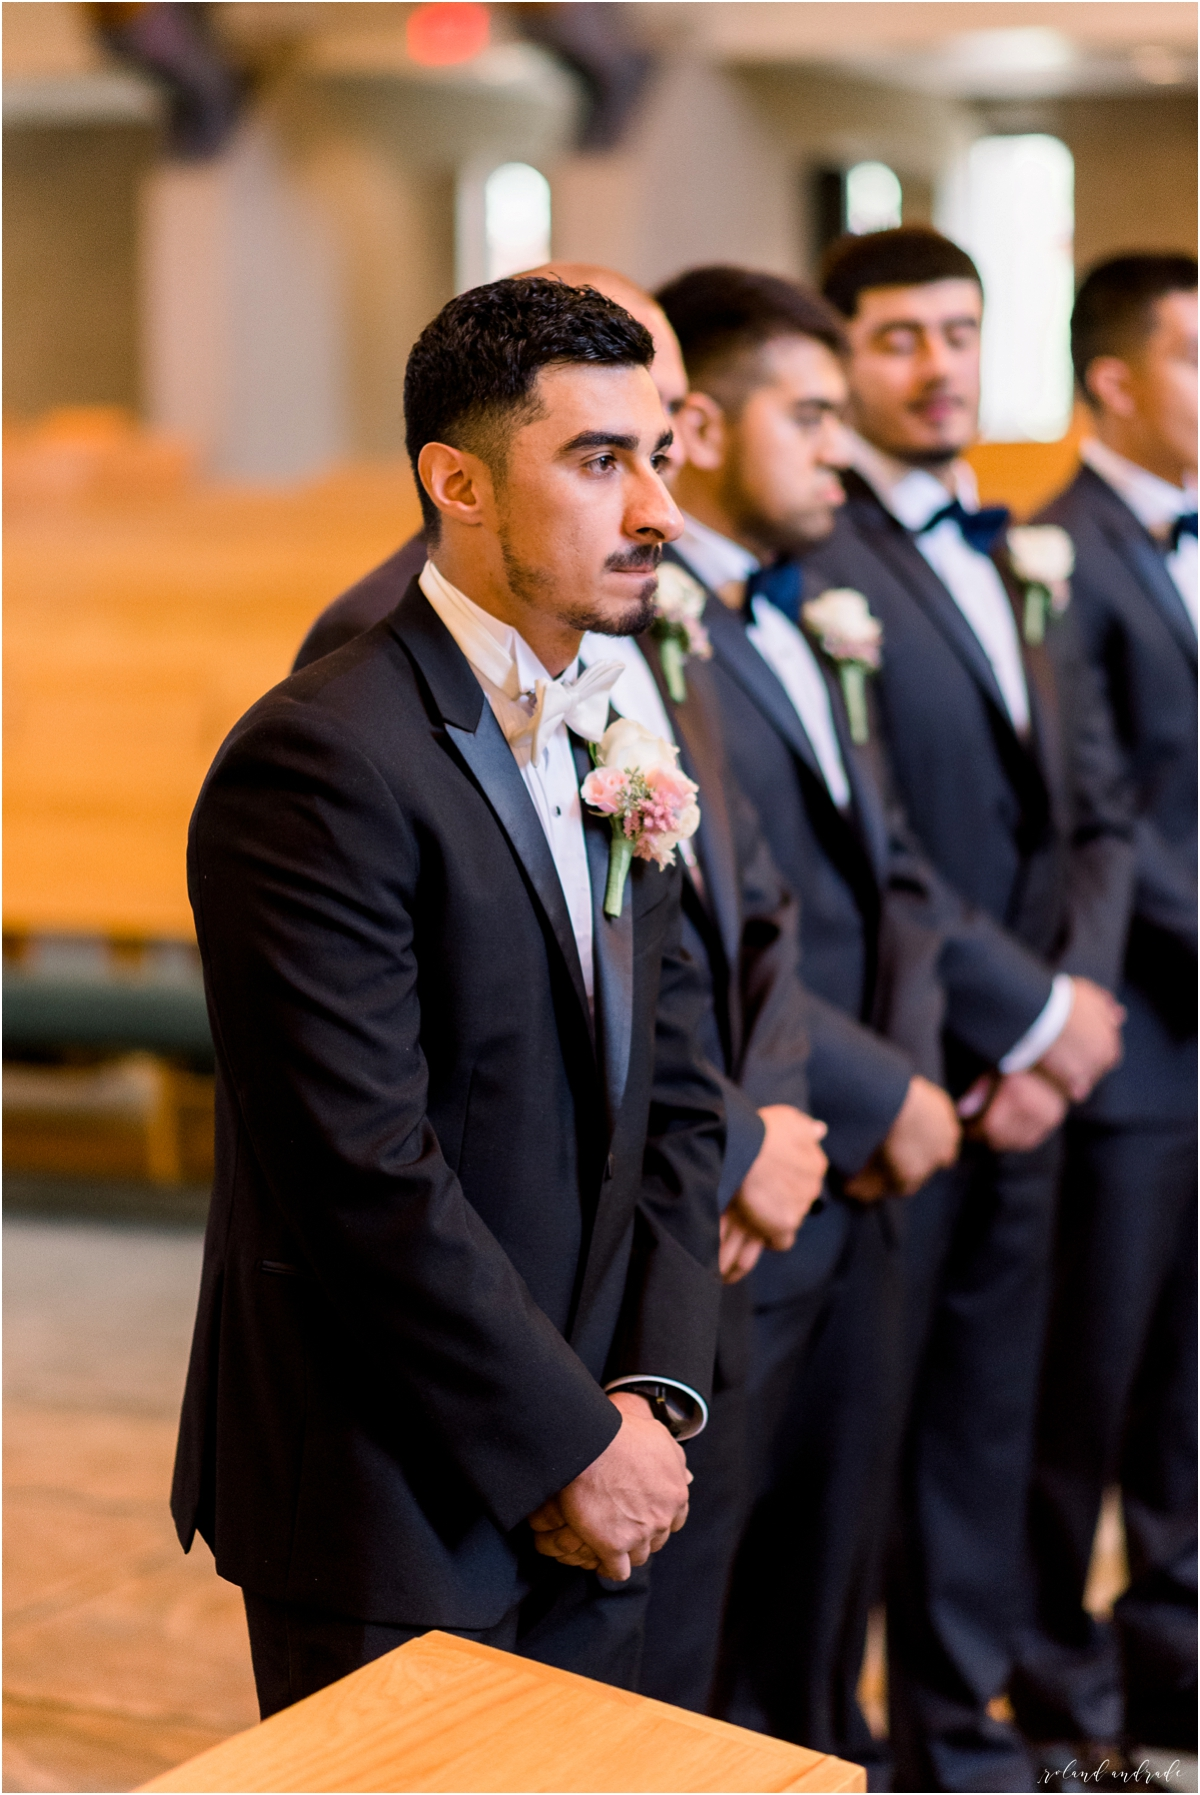 Chicago Wedding Photography, Orchidia Real Wedding, Rosemont Wedding, Best Chicago Photographer29.jpg